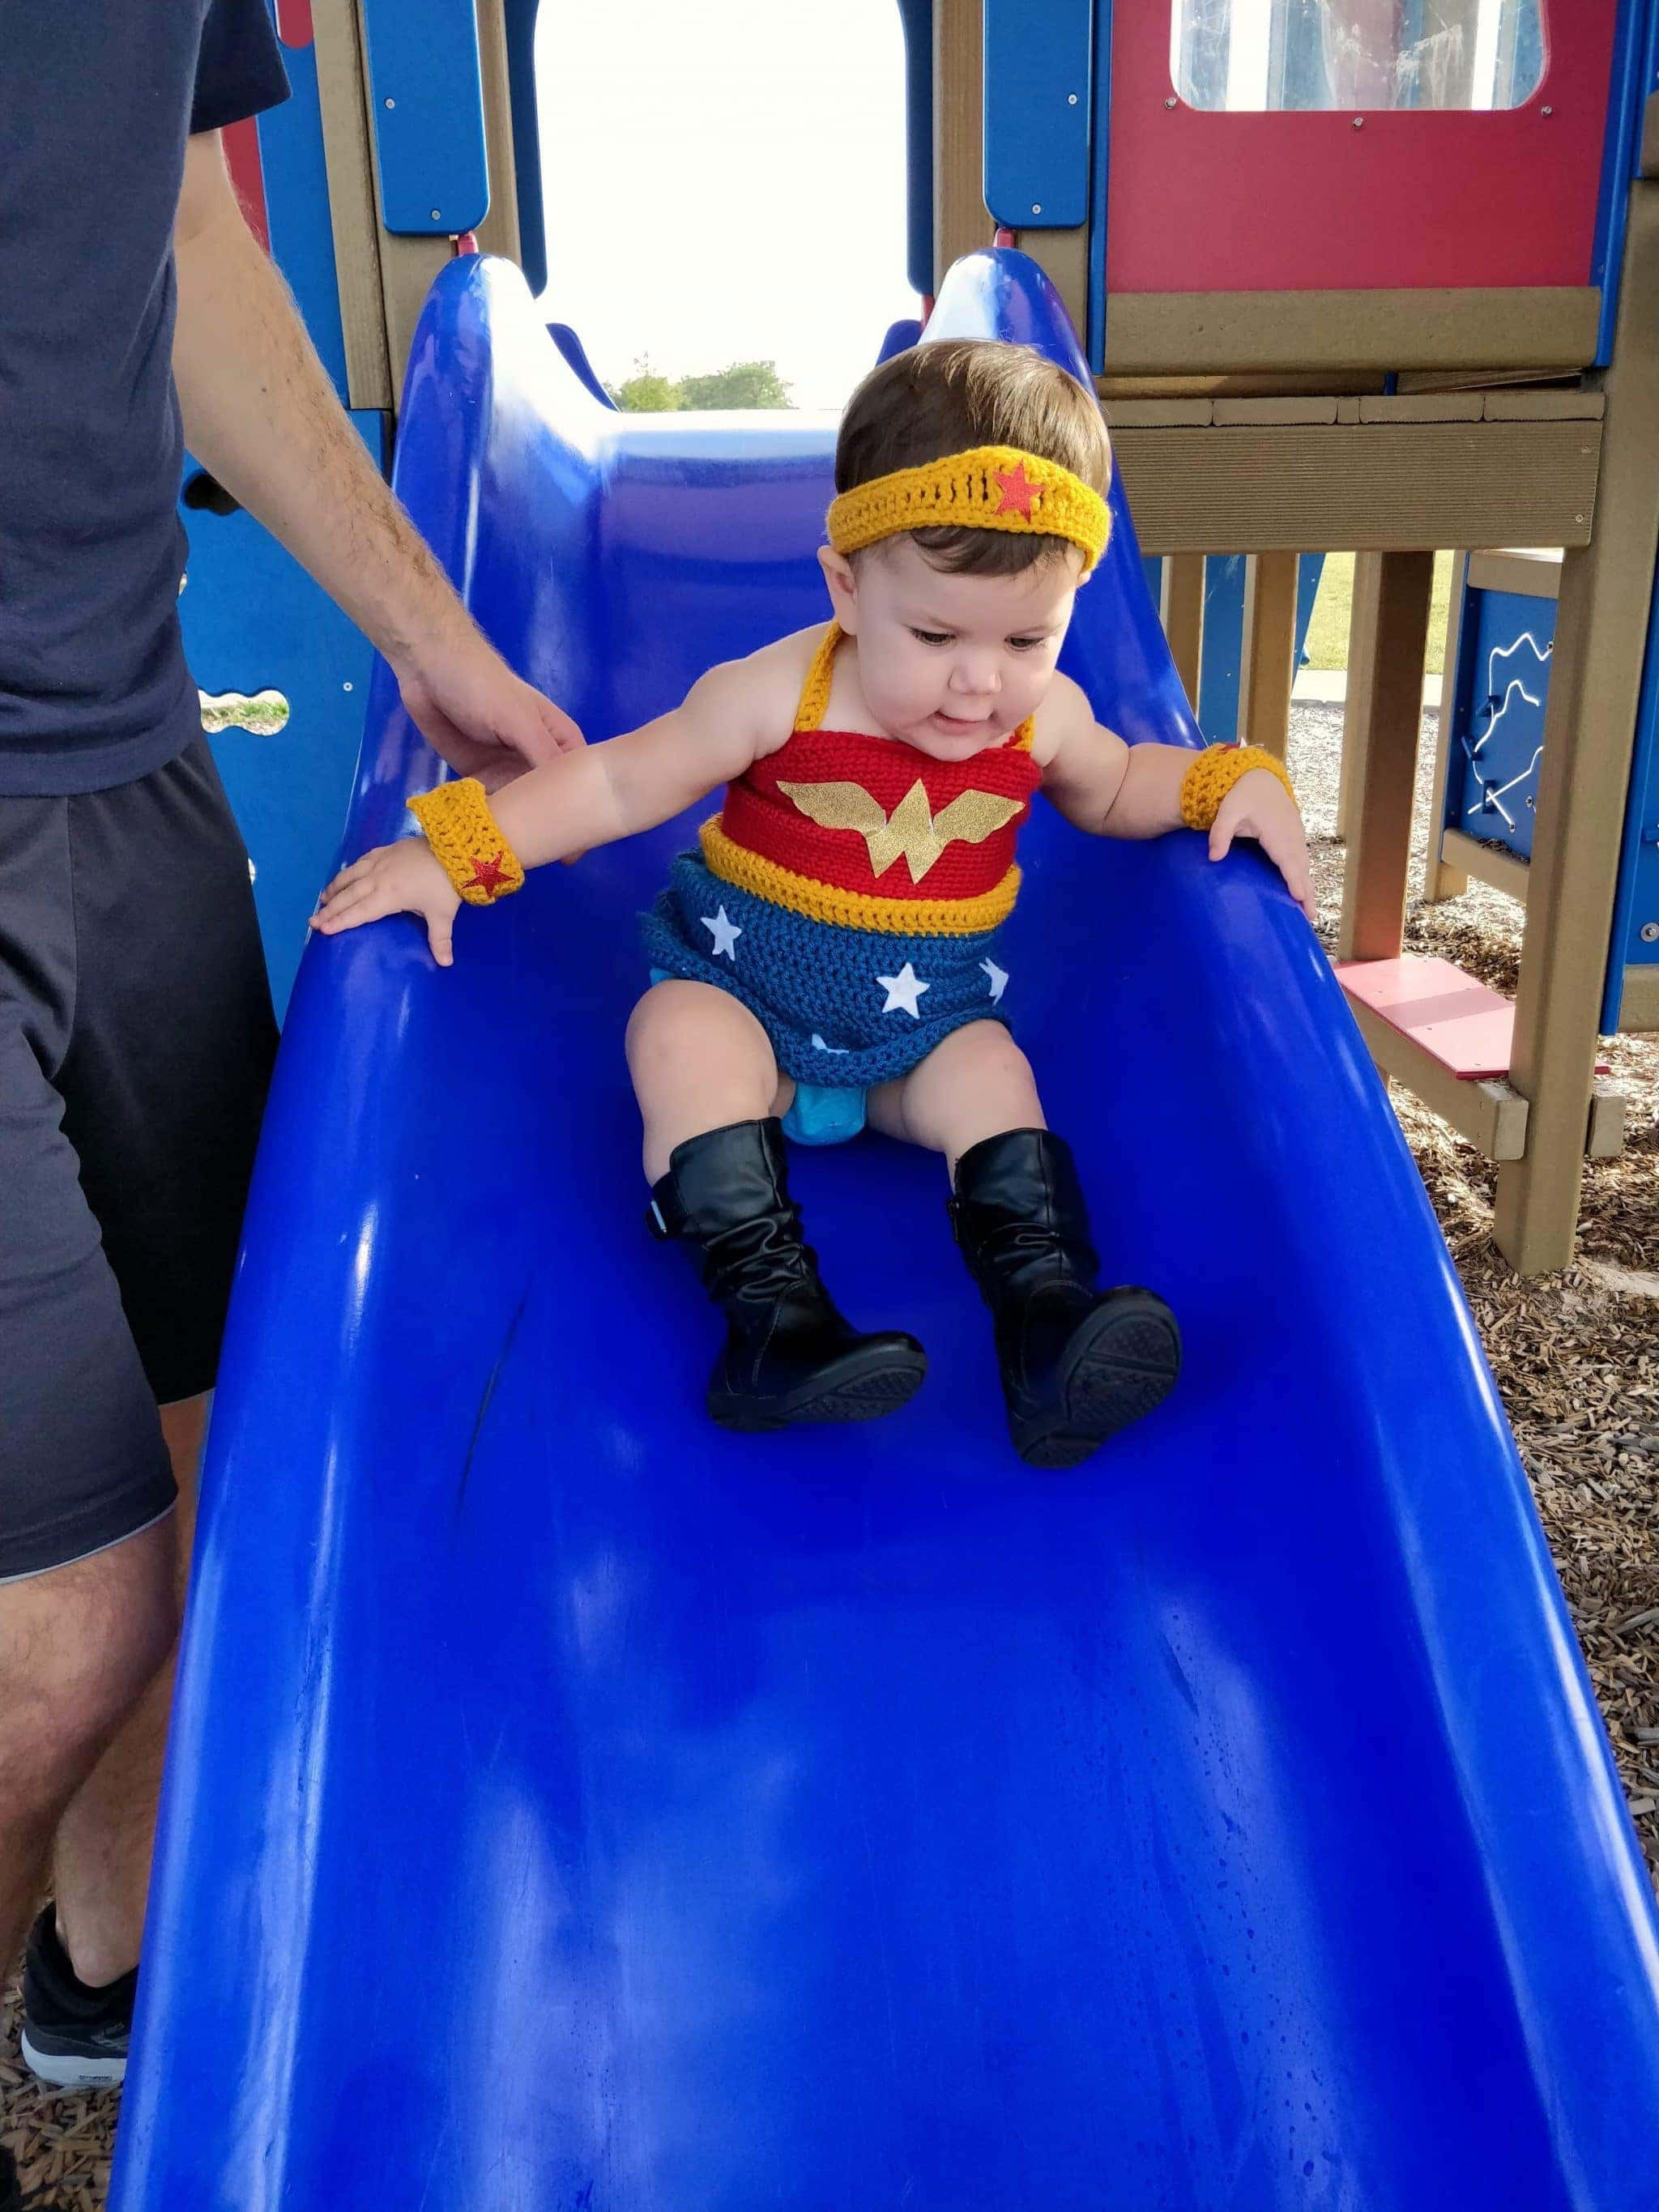 Little girl wearing wonder woman outfit going down a blue slide at the playground